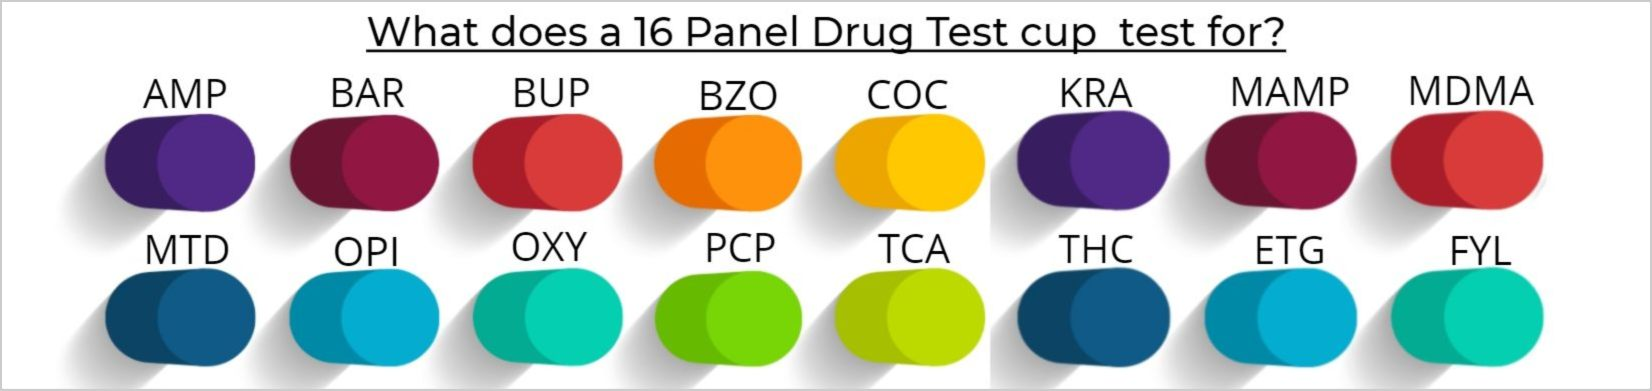 What does a 16 Panel Drug Test cup test for